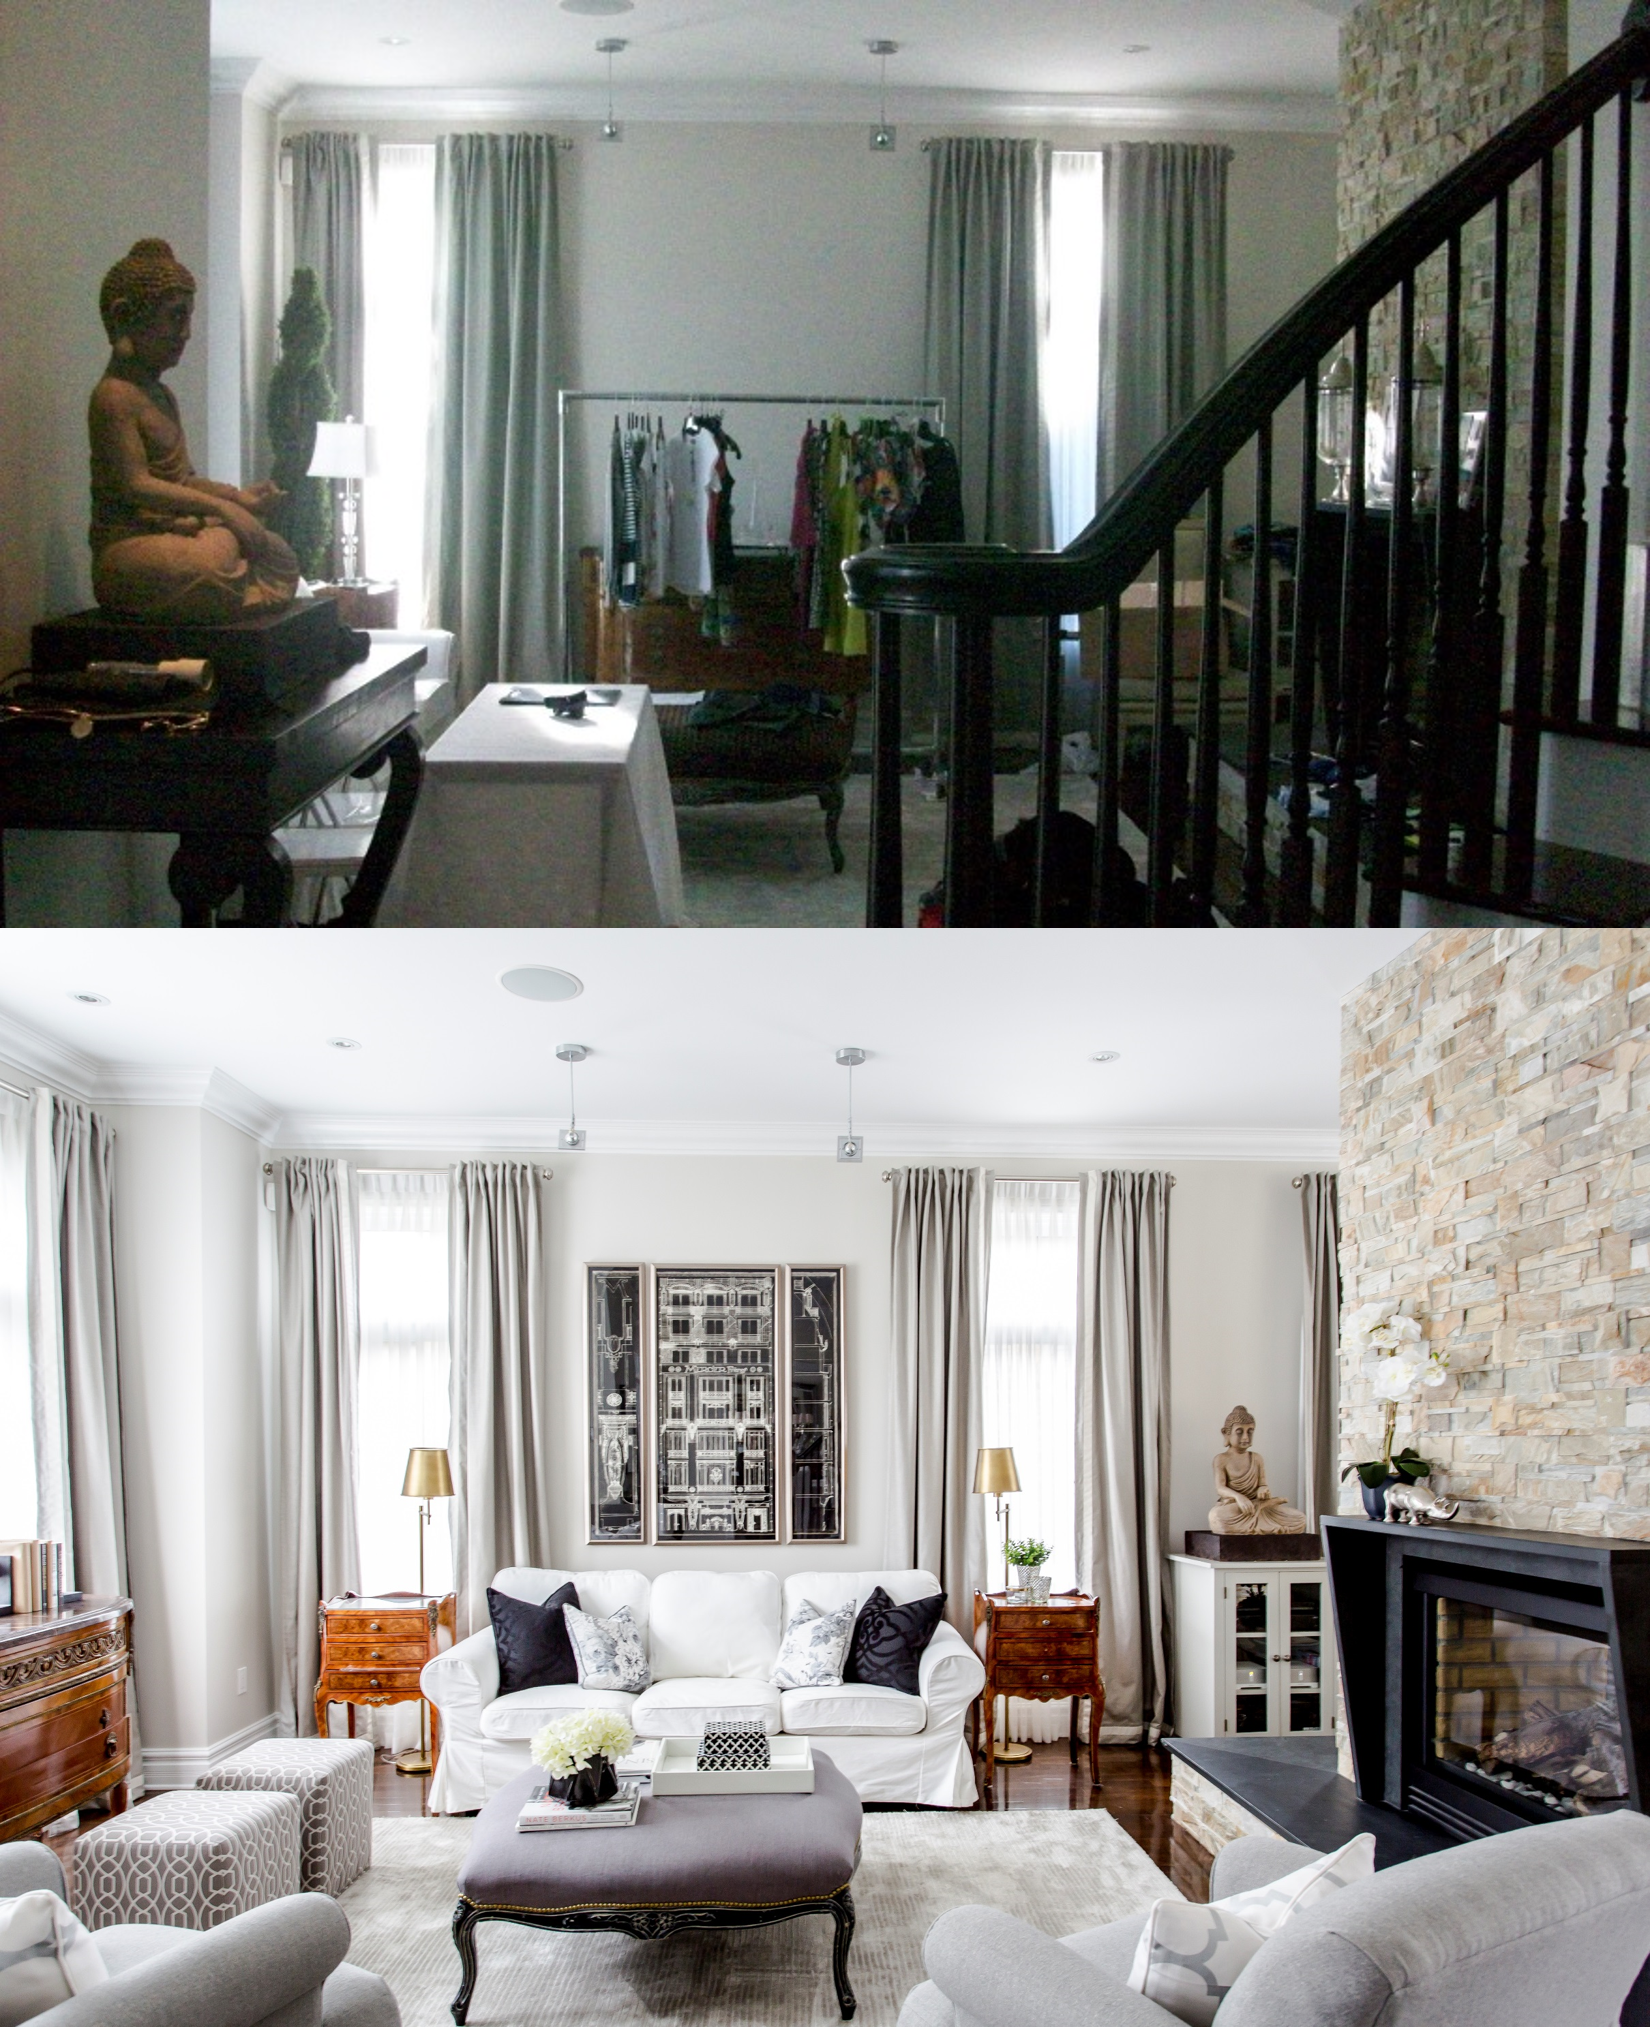 Dramatic before and after of Tanya's living room decor with Lux Decor's full consult service.